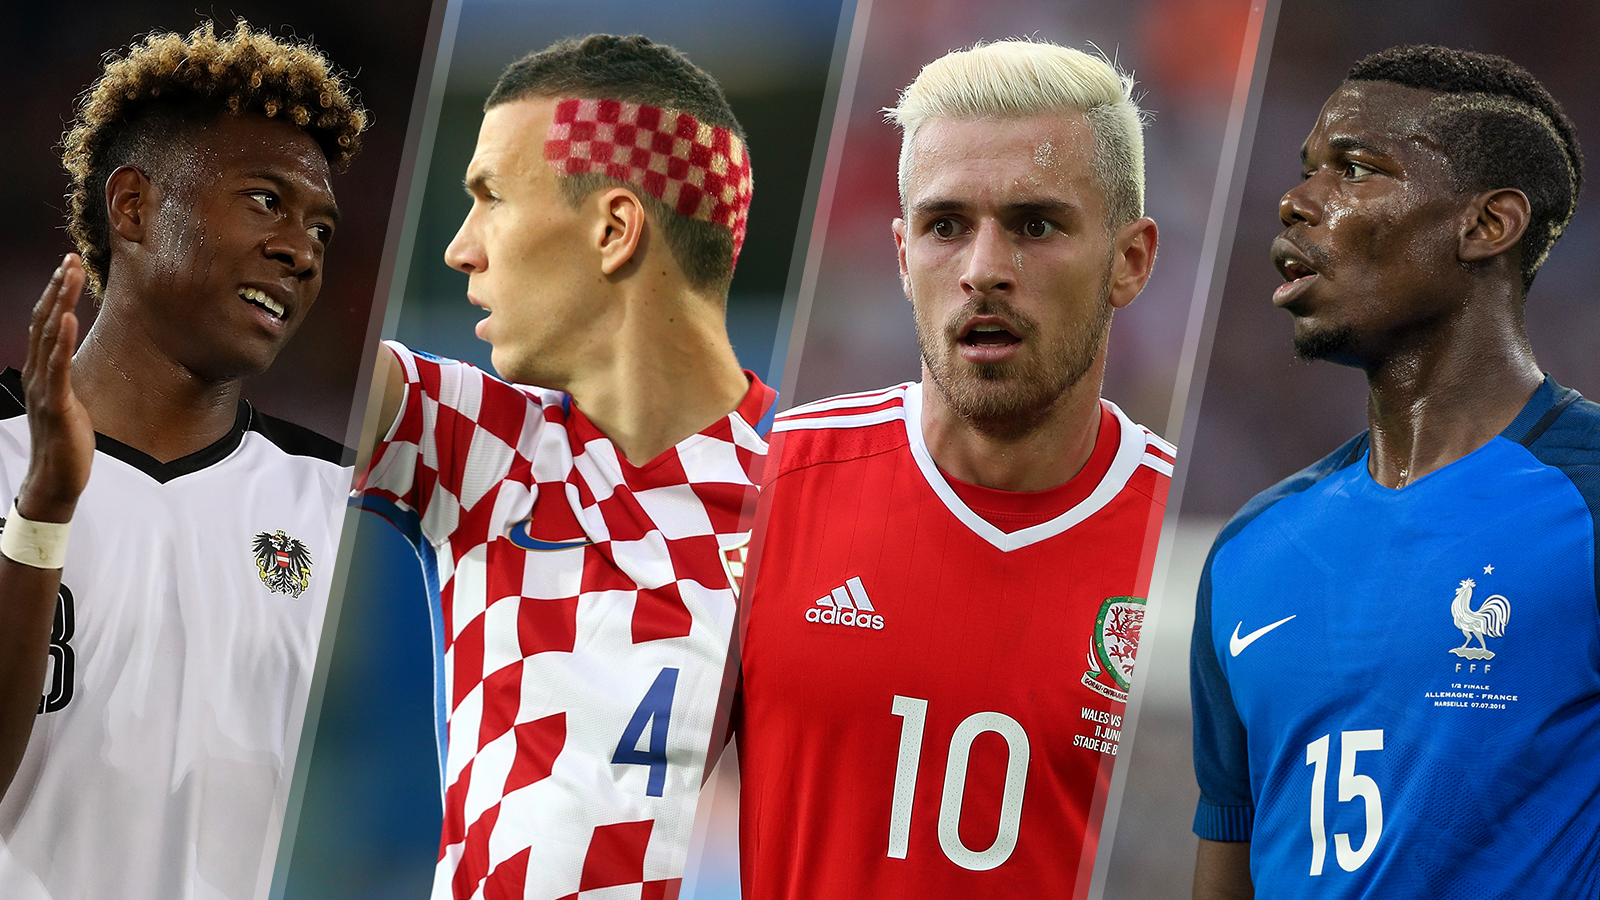 The best (and worst) 11 haircuts from Euro 2016